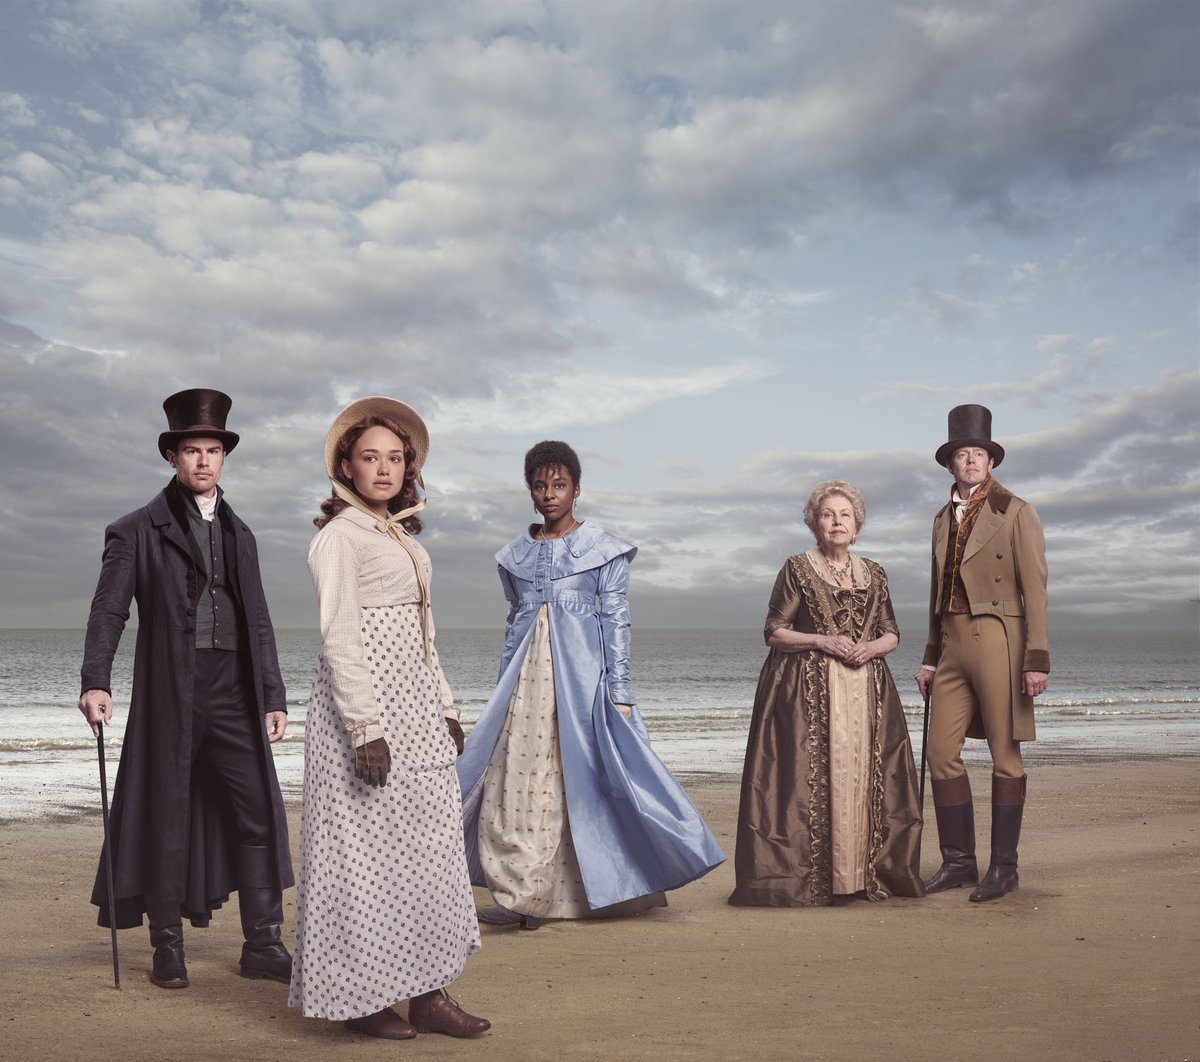 ONE WEEK TO GO! #Sanditon airs on ITV, Sunday 25th at 9pm. Join us for an all new drama adapted from Jane Austen's unfinished novel.